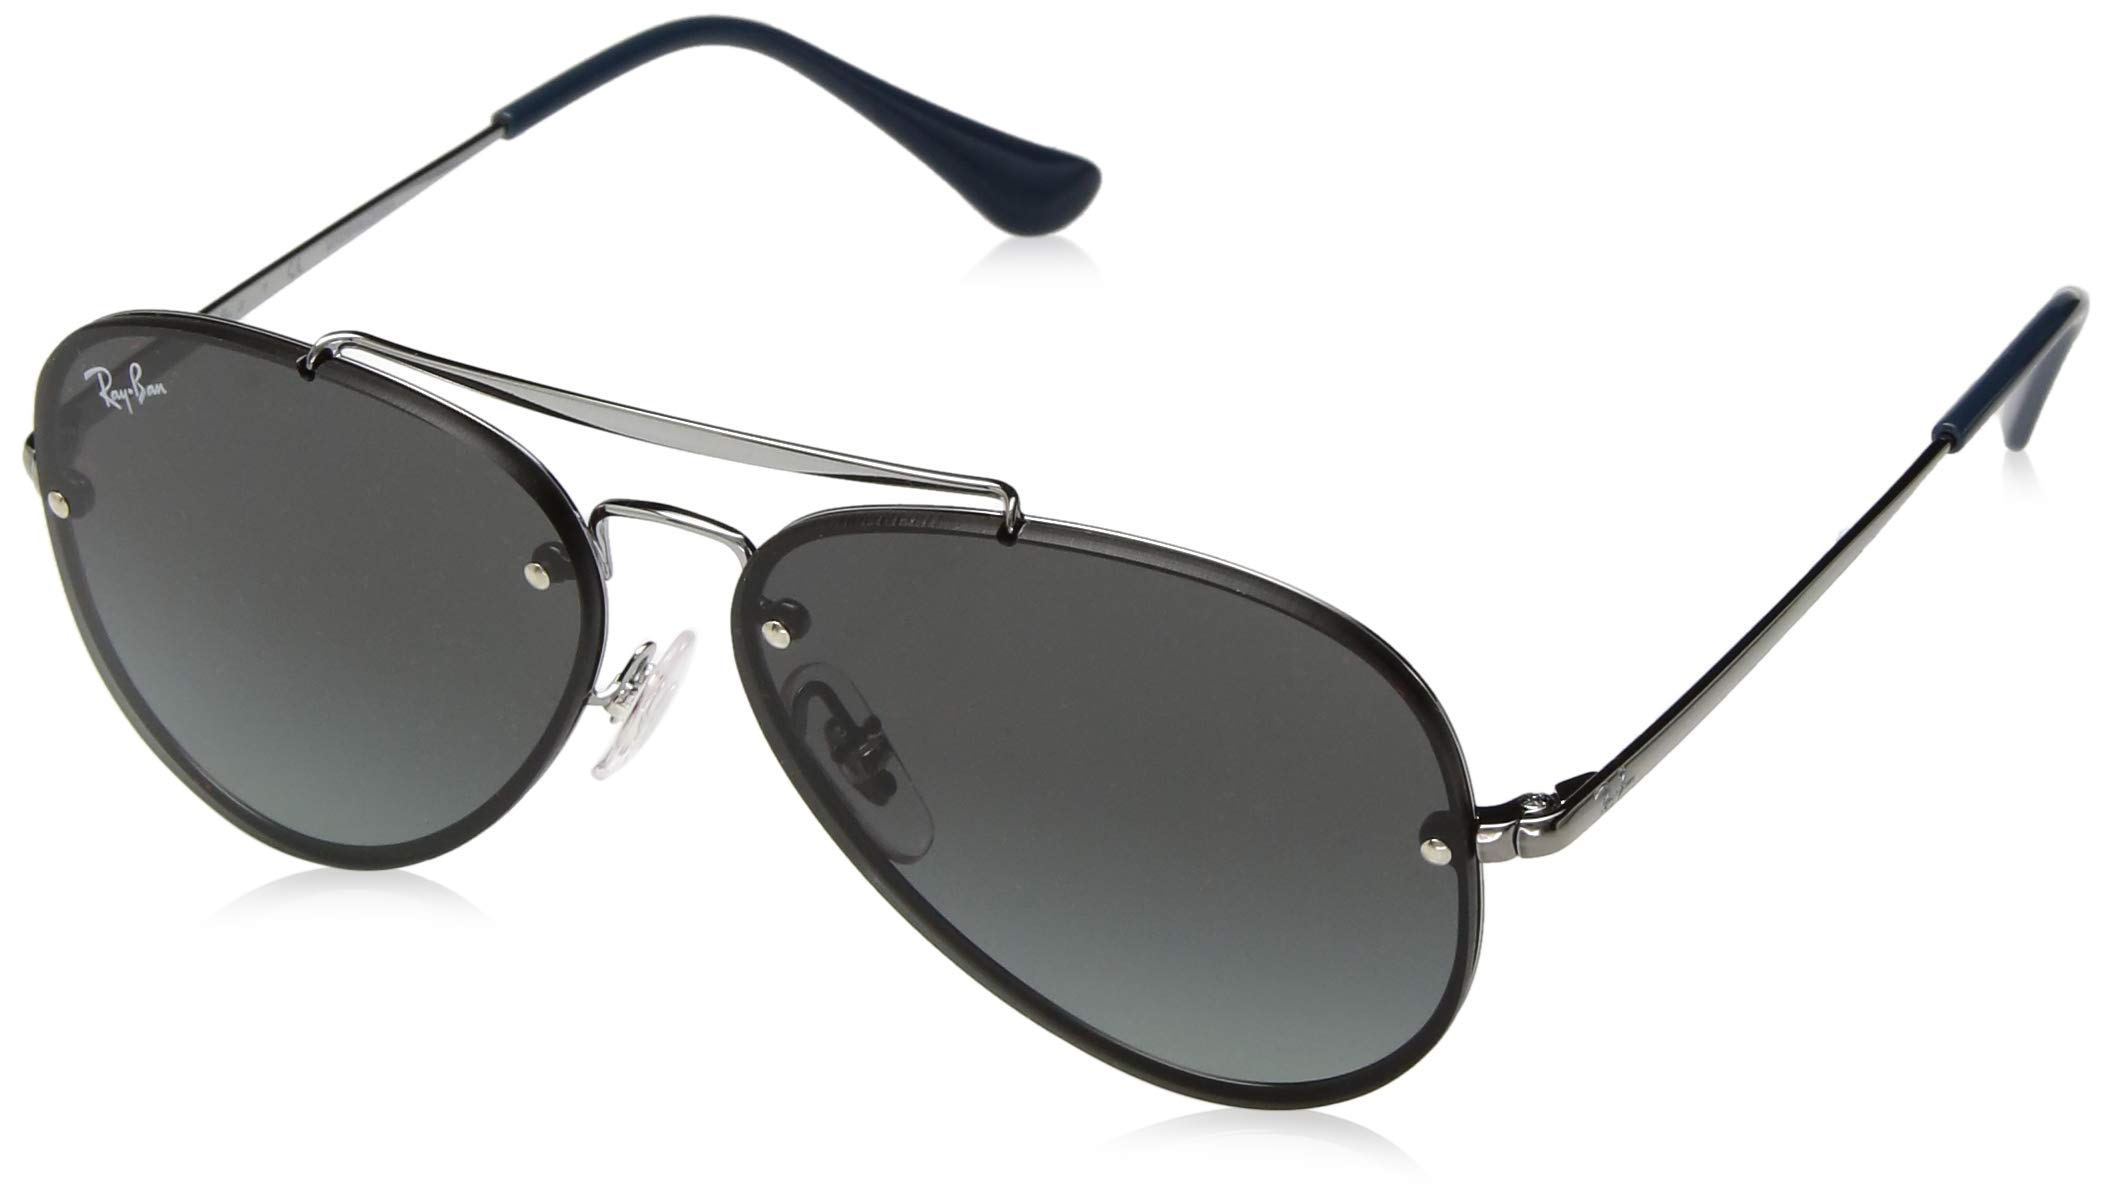 Ray-Ban Junior RJ9548SN Blaze Aviator Kids Sunglasses, Gunmetal/Gray Gradient, 54 mm